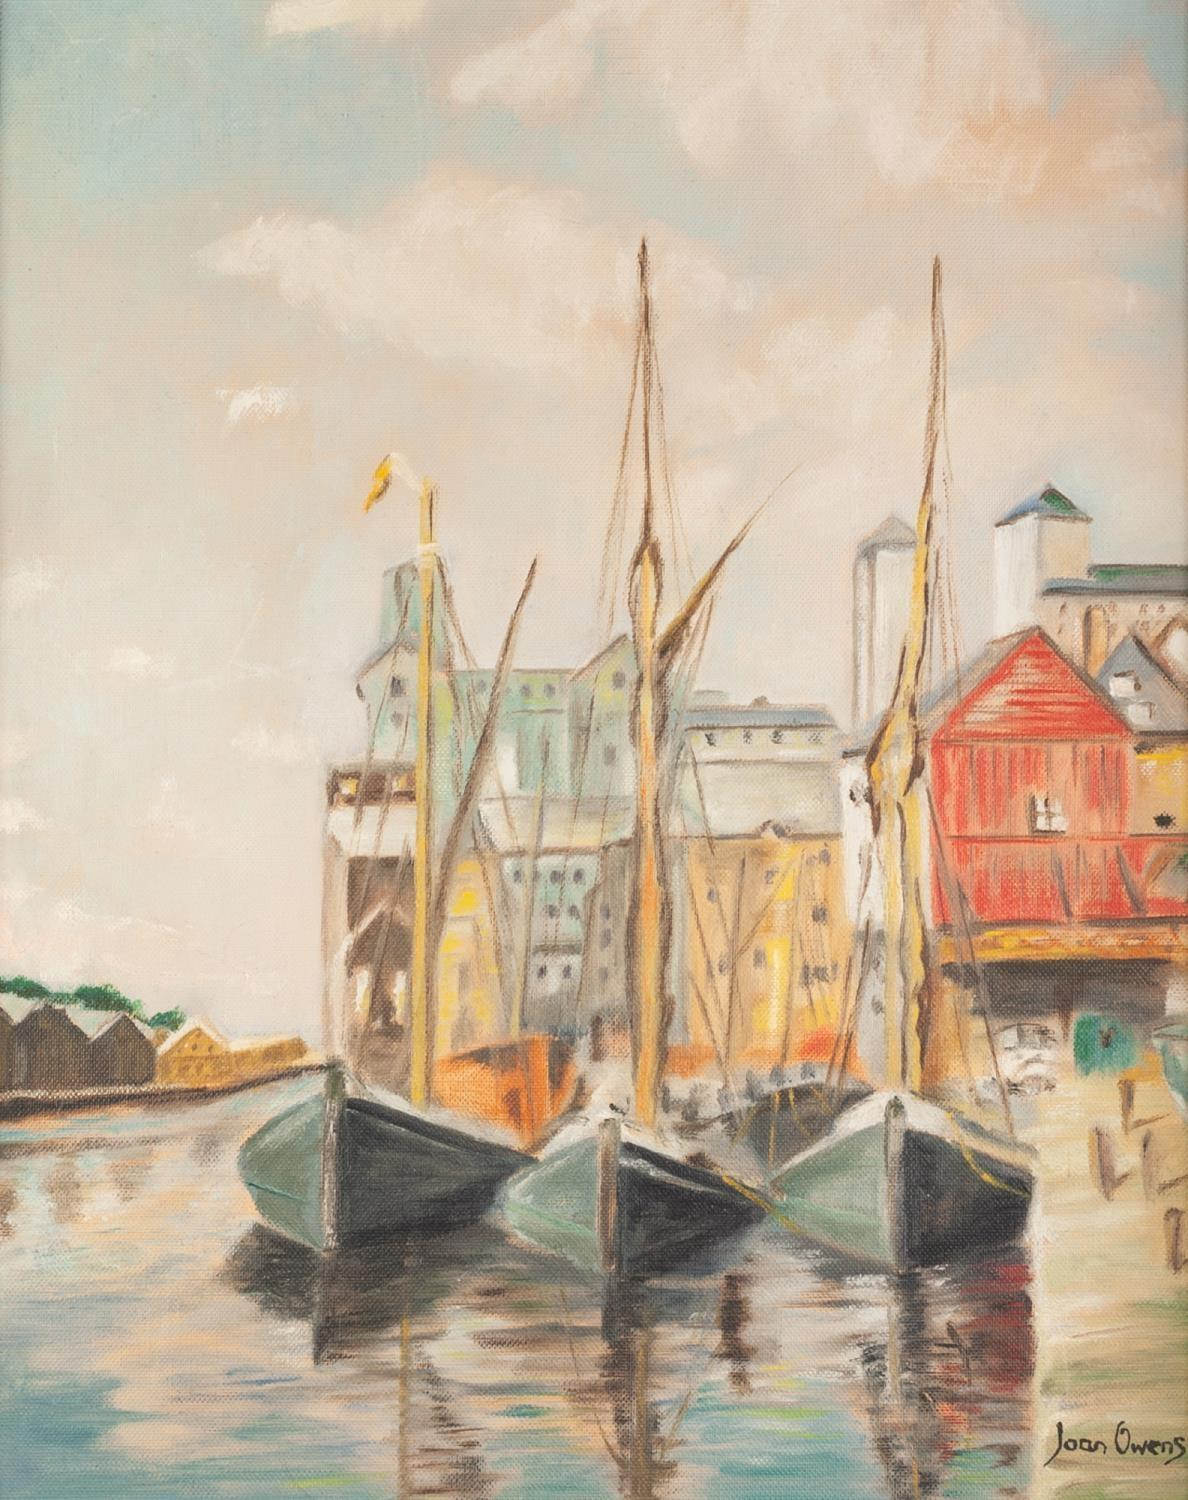 Lot 270 - JOAN OWENS (MODERN) OIL PAINTING ON BOARD ?Ipswich Docks? Signed, titled to label verso 19 ½? x